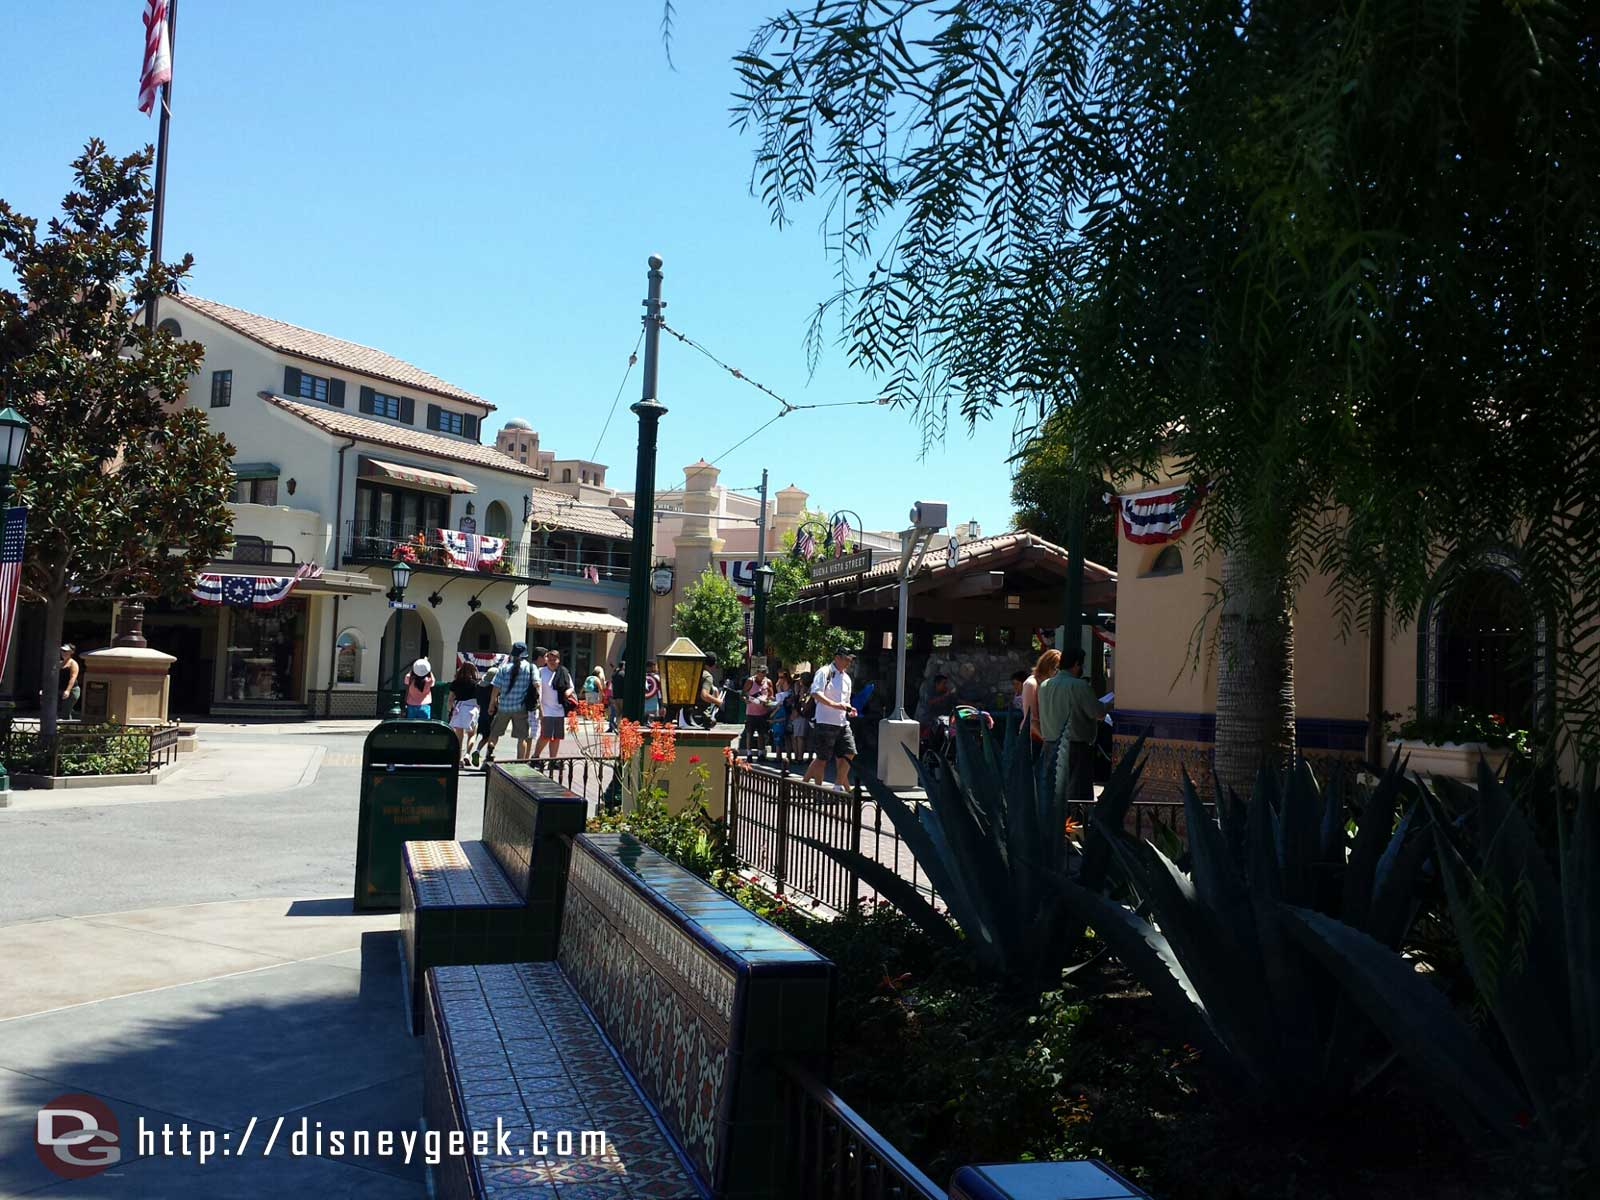 Arriving on #BuenaVistaStreet to start my visit to the #Disneyland resort today